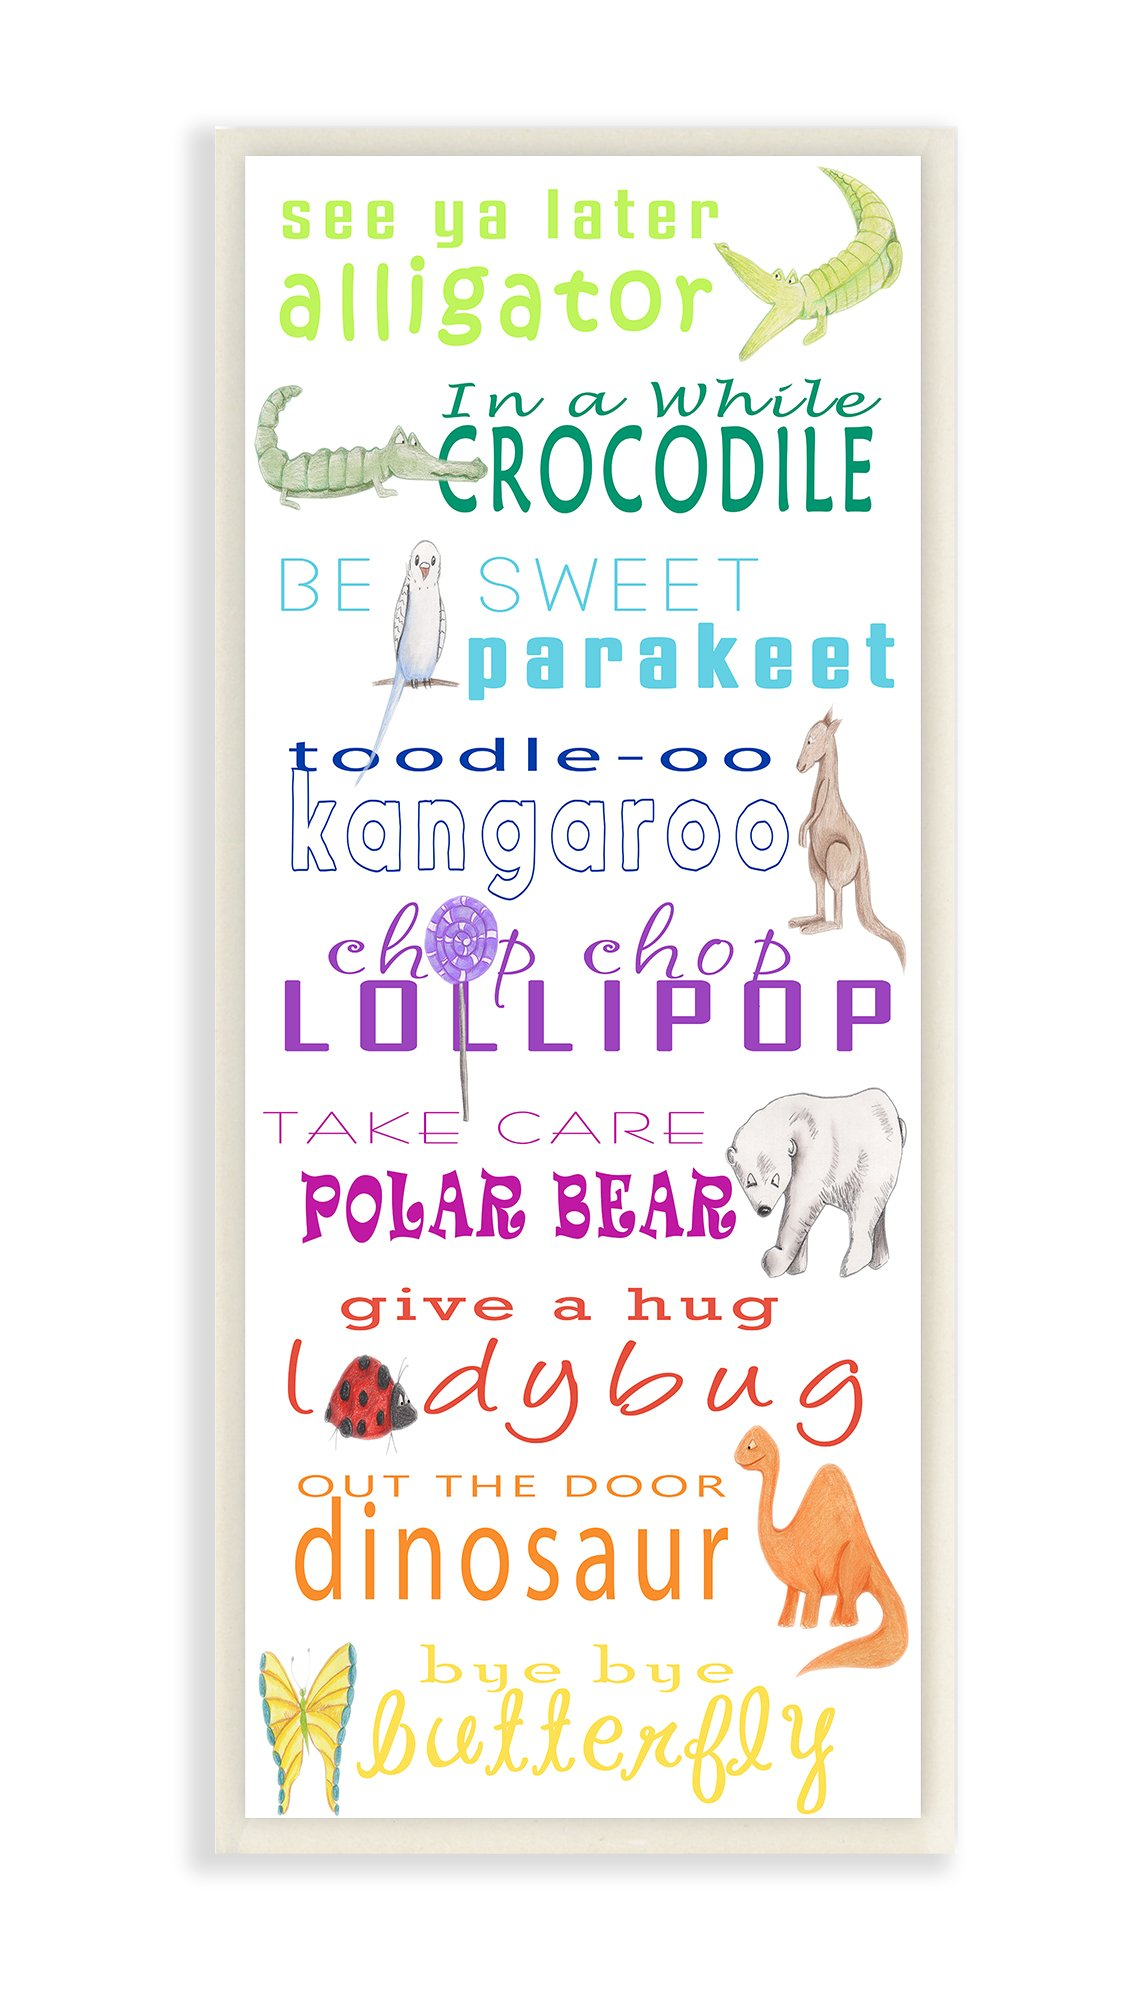 The Kids Room By Stupell See You Later Alligator Animal Goodbyes Wall Plaque Art, 7 x 0.5 x 17, Proudly Made in USA